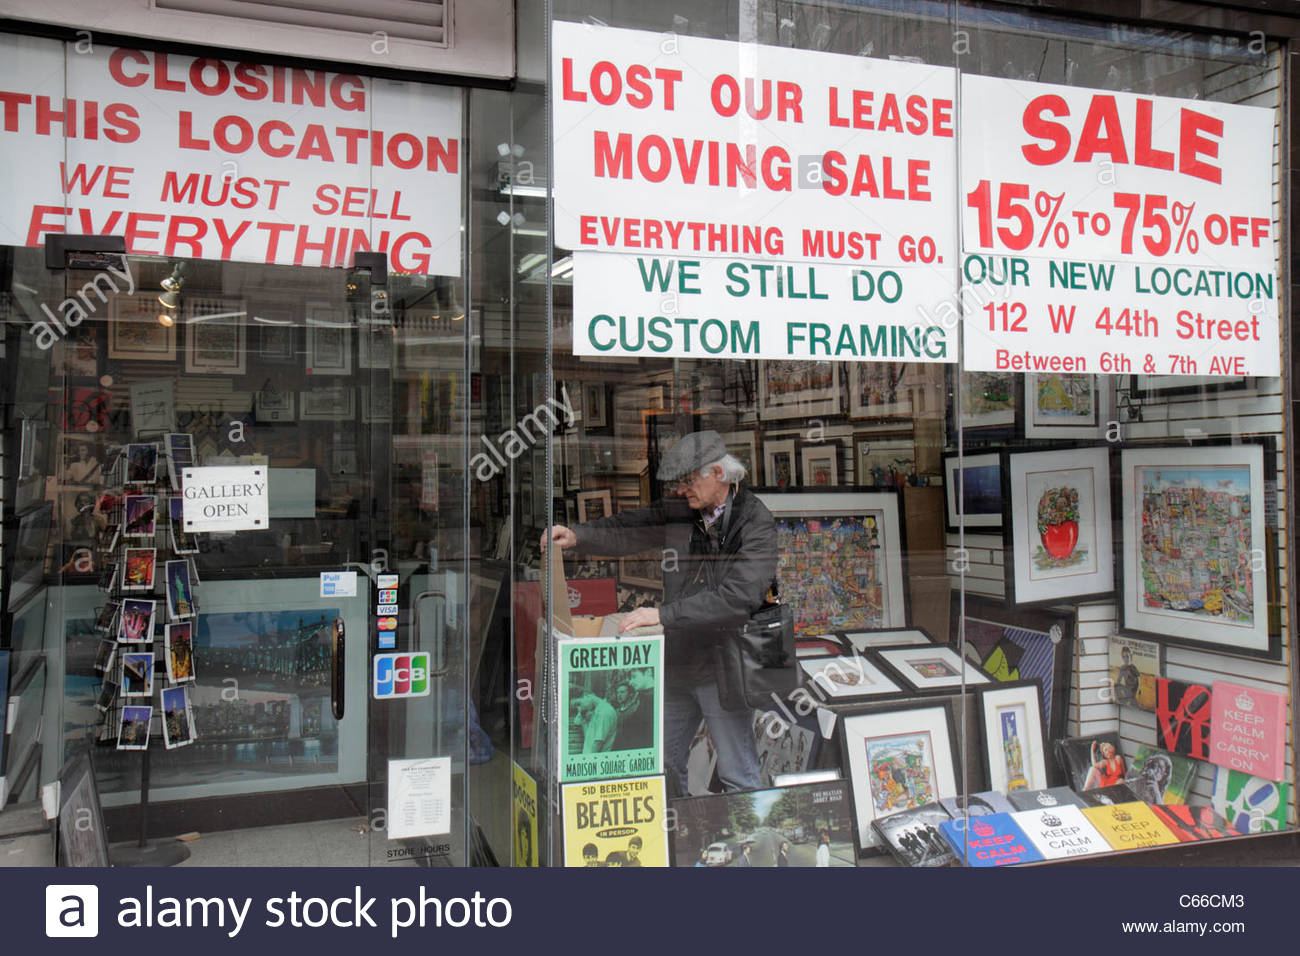 manhattan new york city nyc ny midtown 42nd street framing store business storefront sign closing for